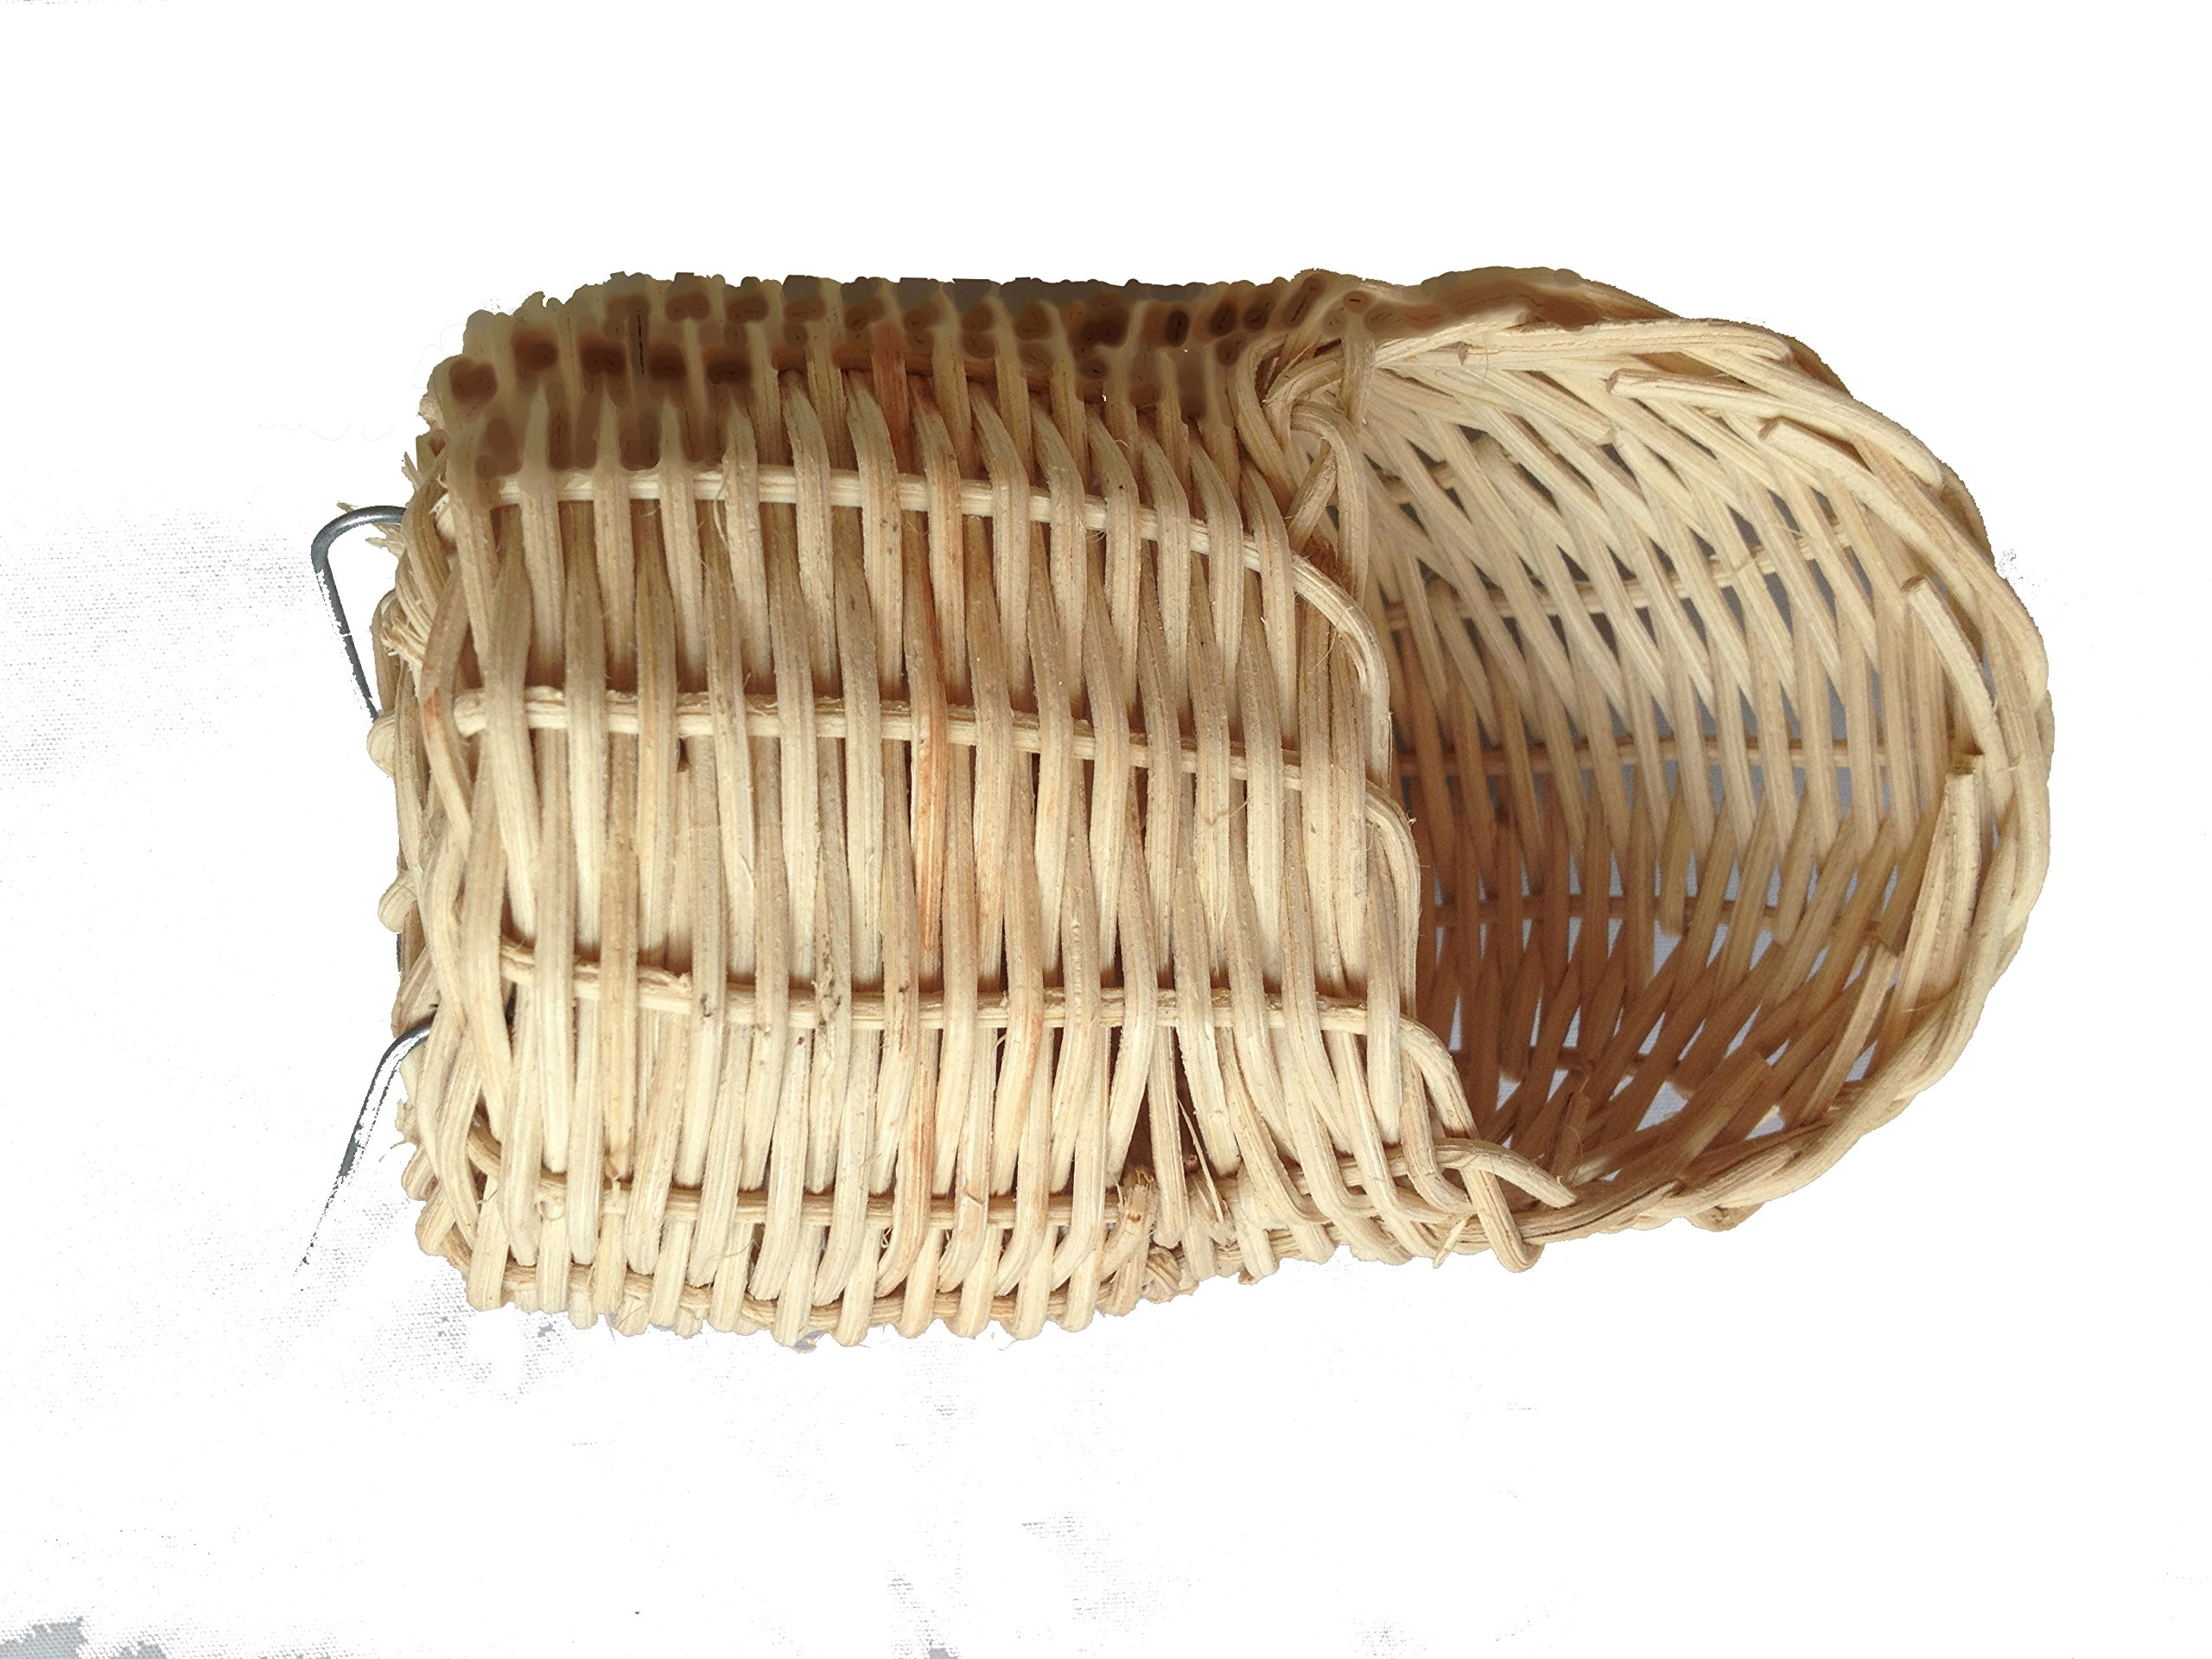 Handmade Rattan Nature's Nest Finch Birds 3x5 Inch by Power of Dream (Image #2)